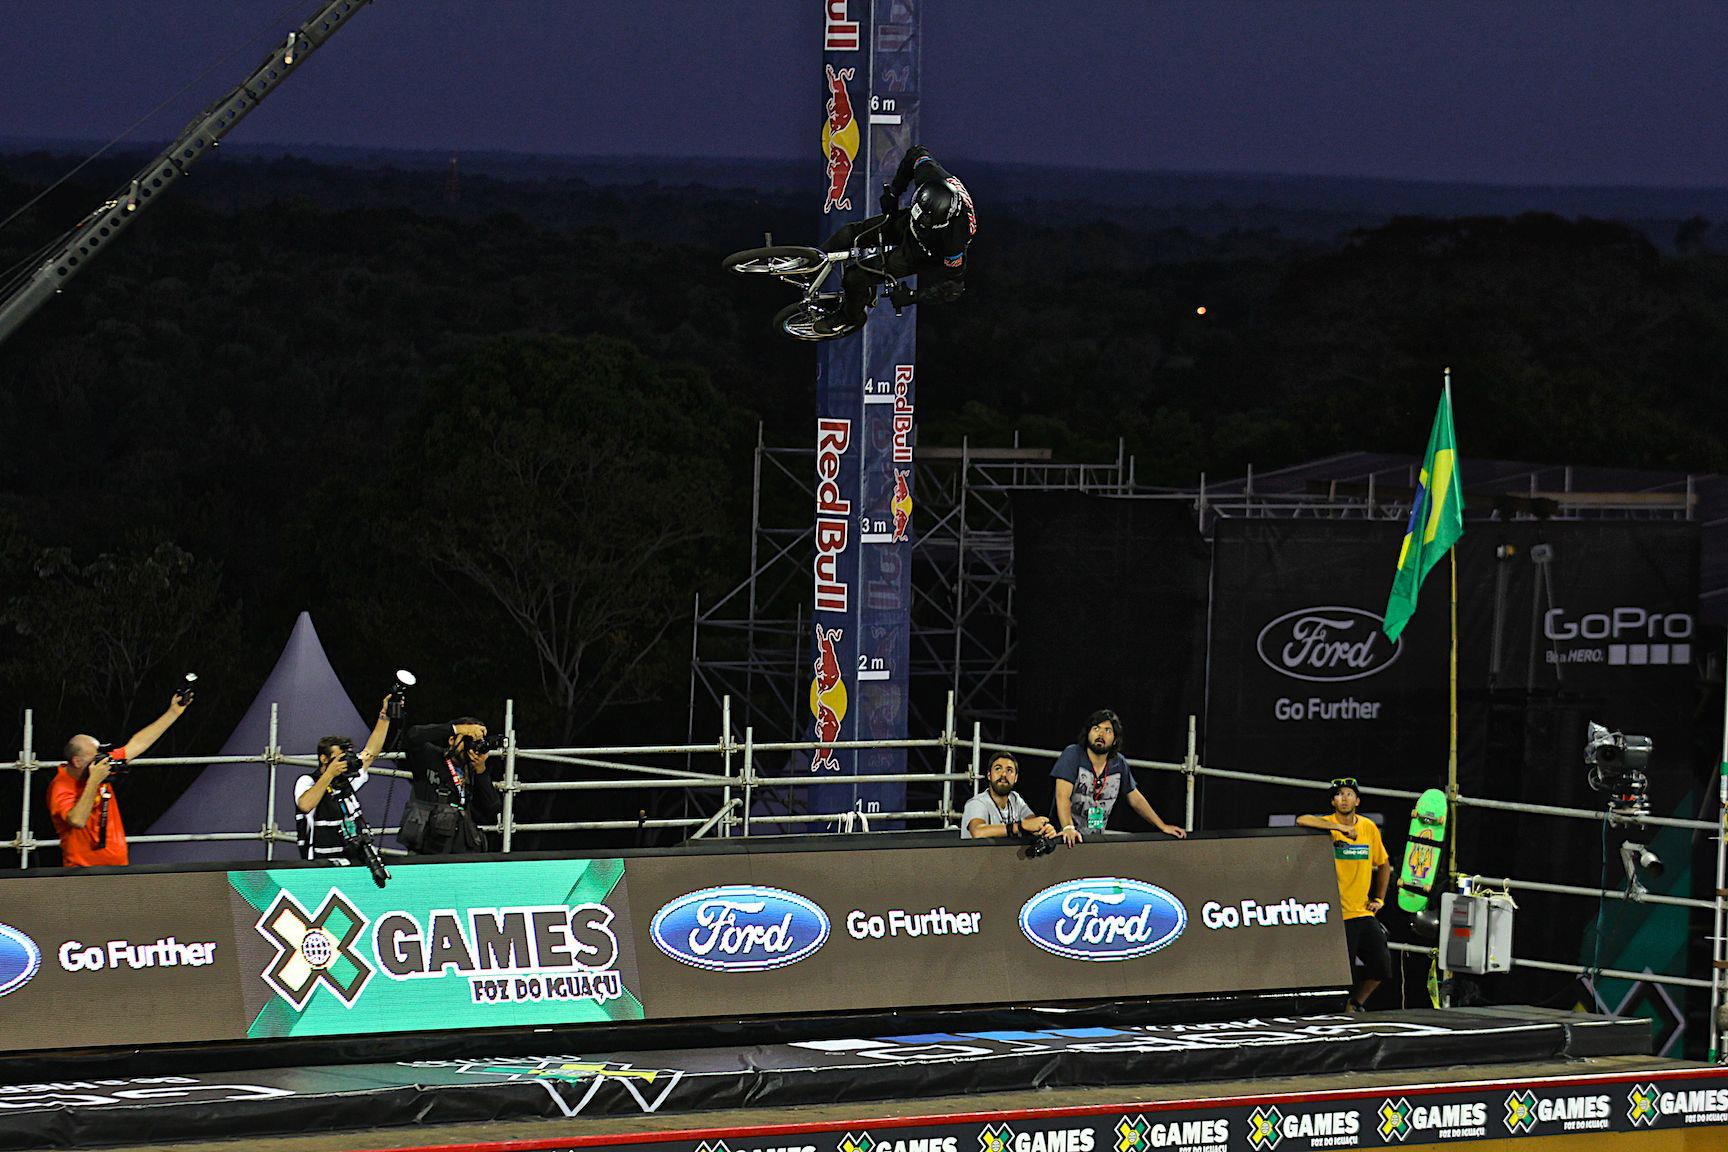 O Big Air animou o incio noite dos X Games Foz do Iguau